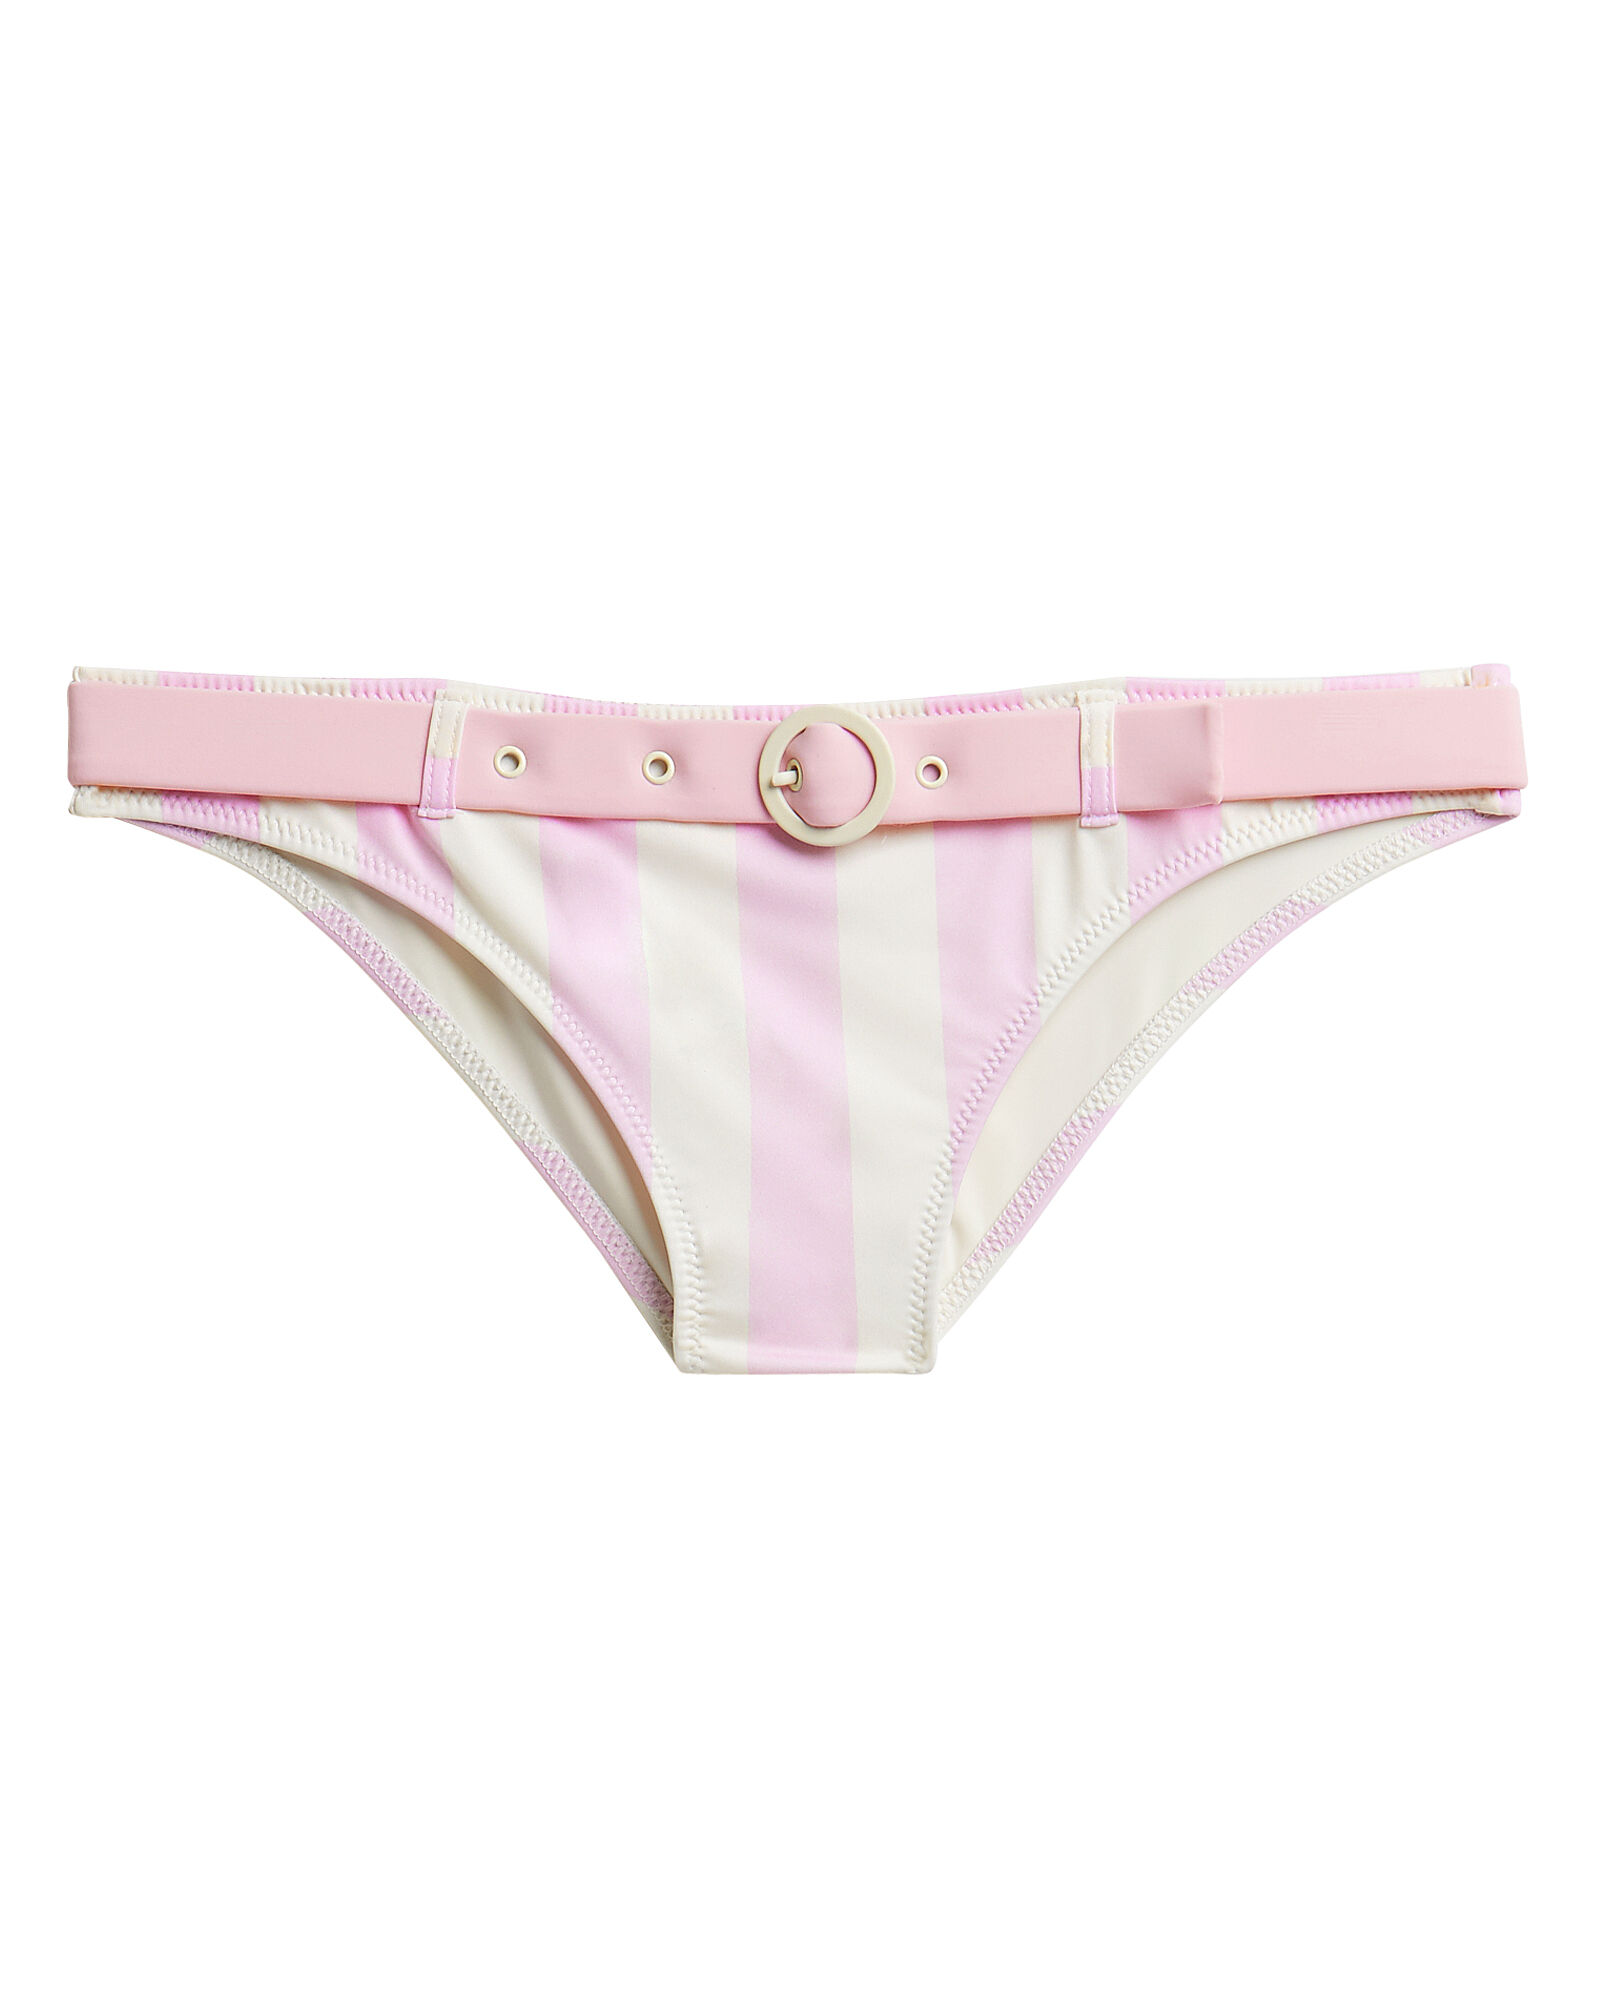 Rachel Belted Bikini Bottoms, MULTI, hi-res